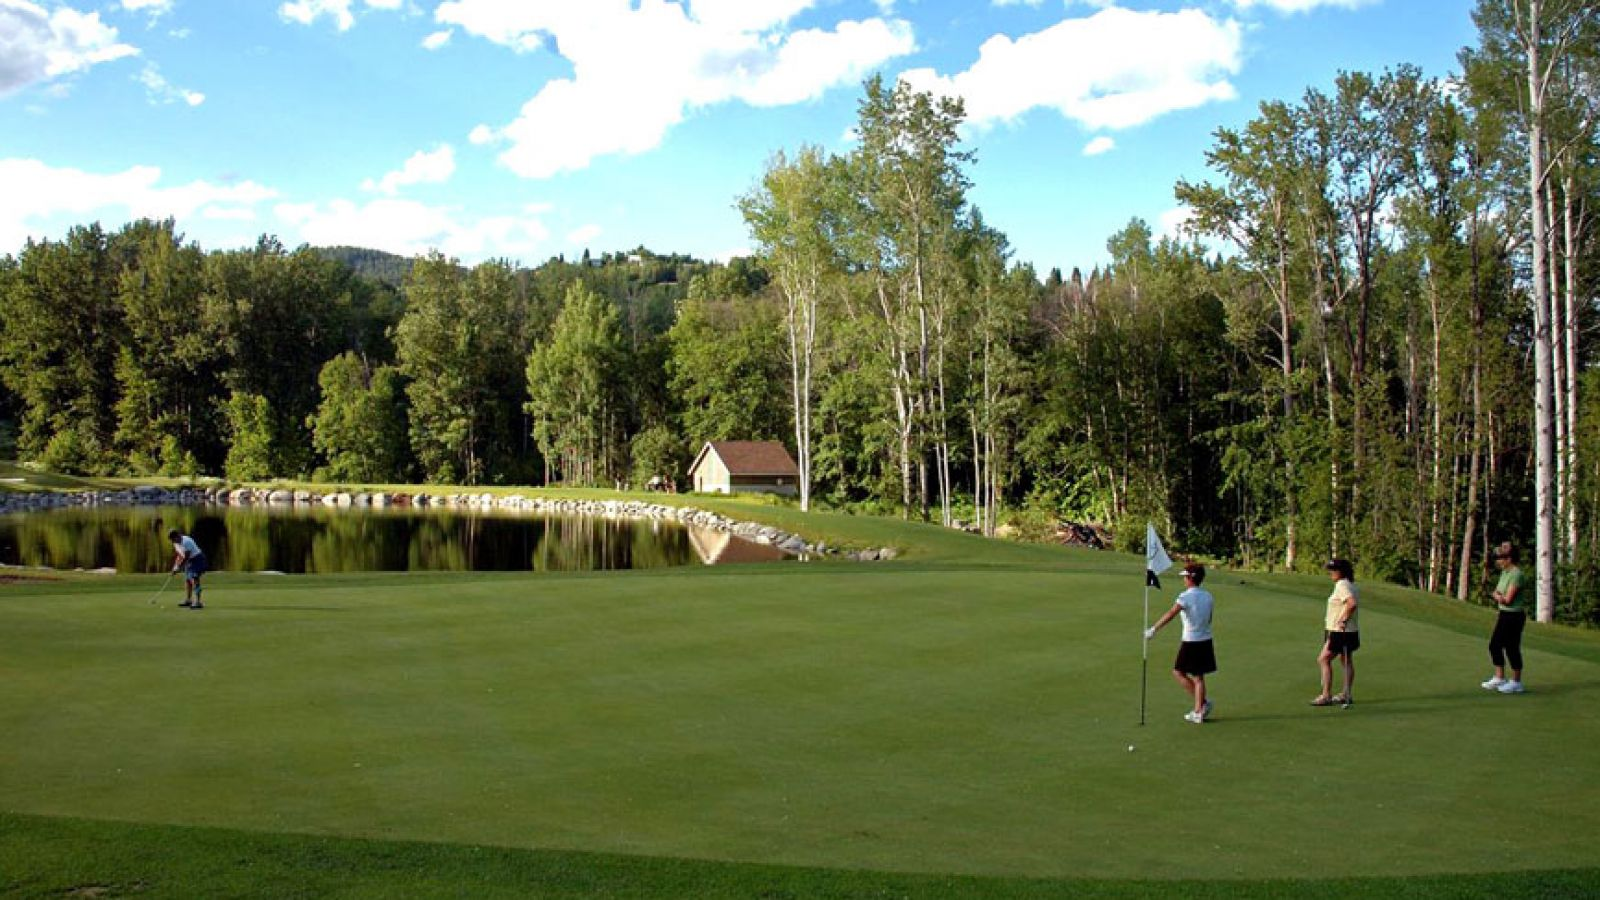 Stunning conditions and championship quality greens.